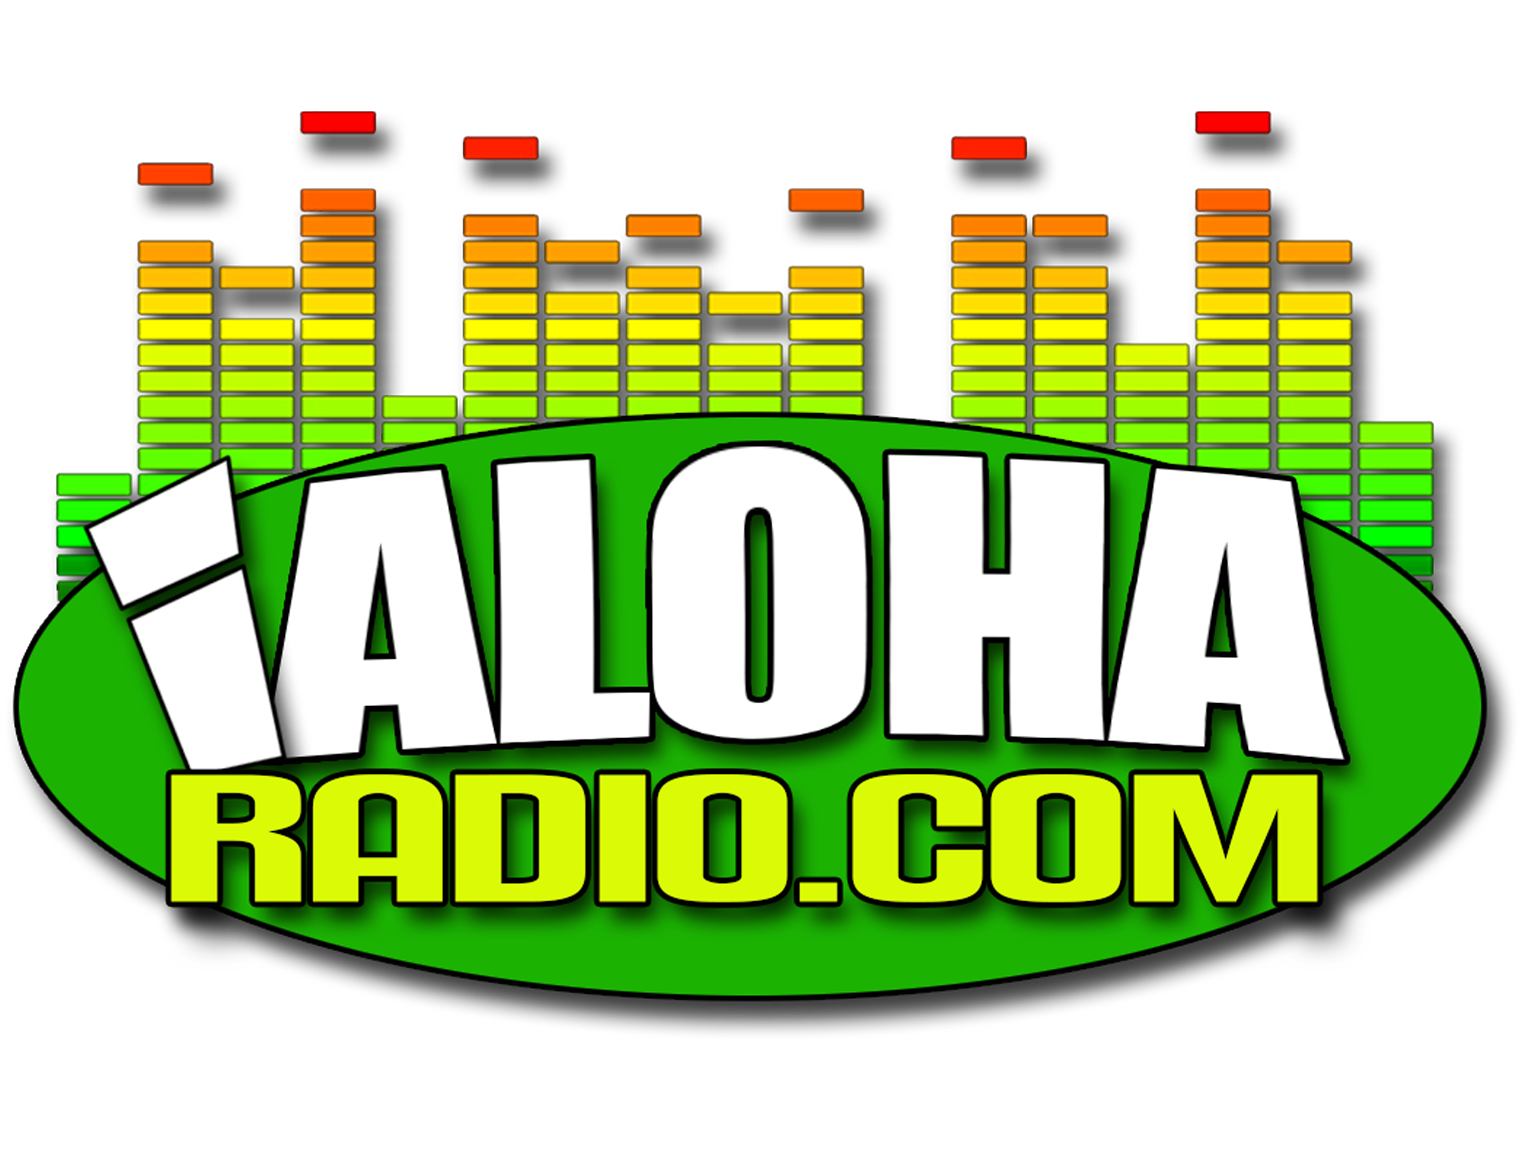 iAlohaRadio logo and link